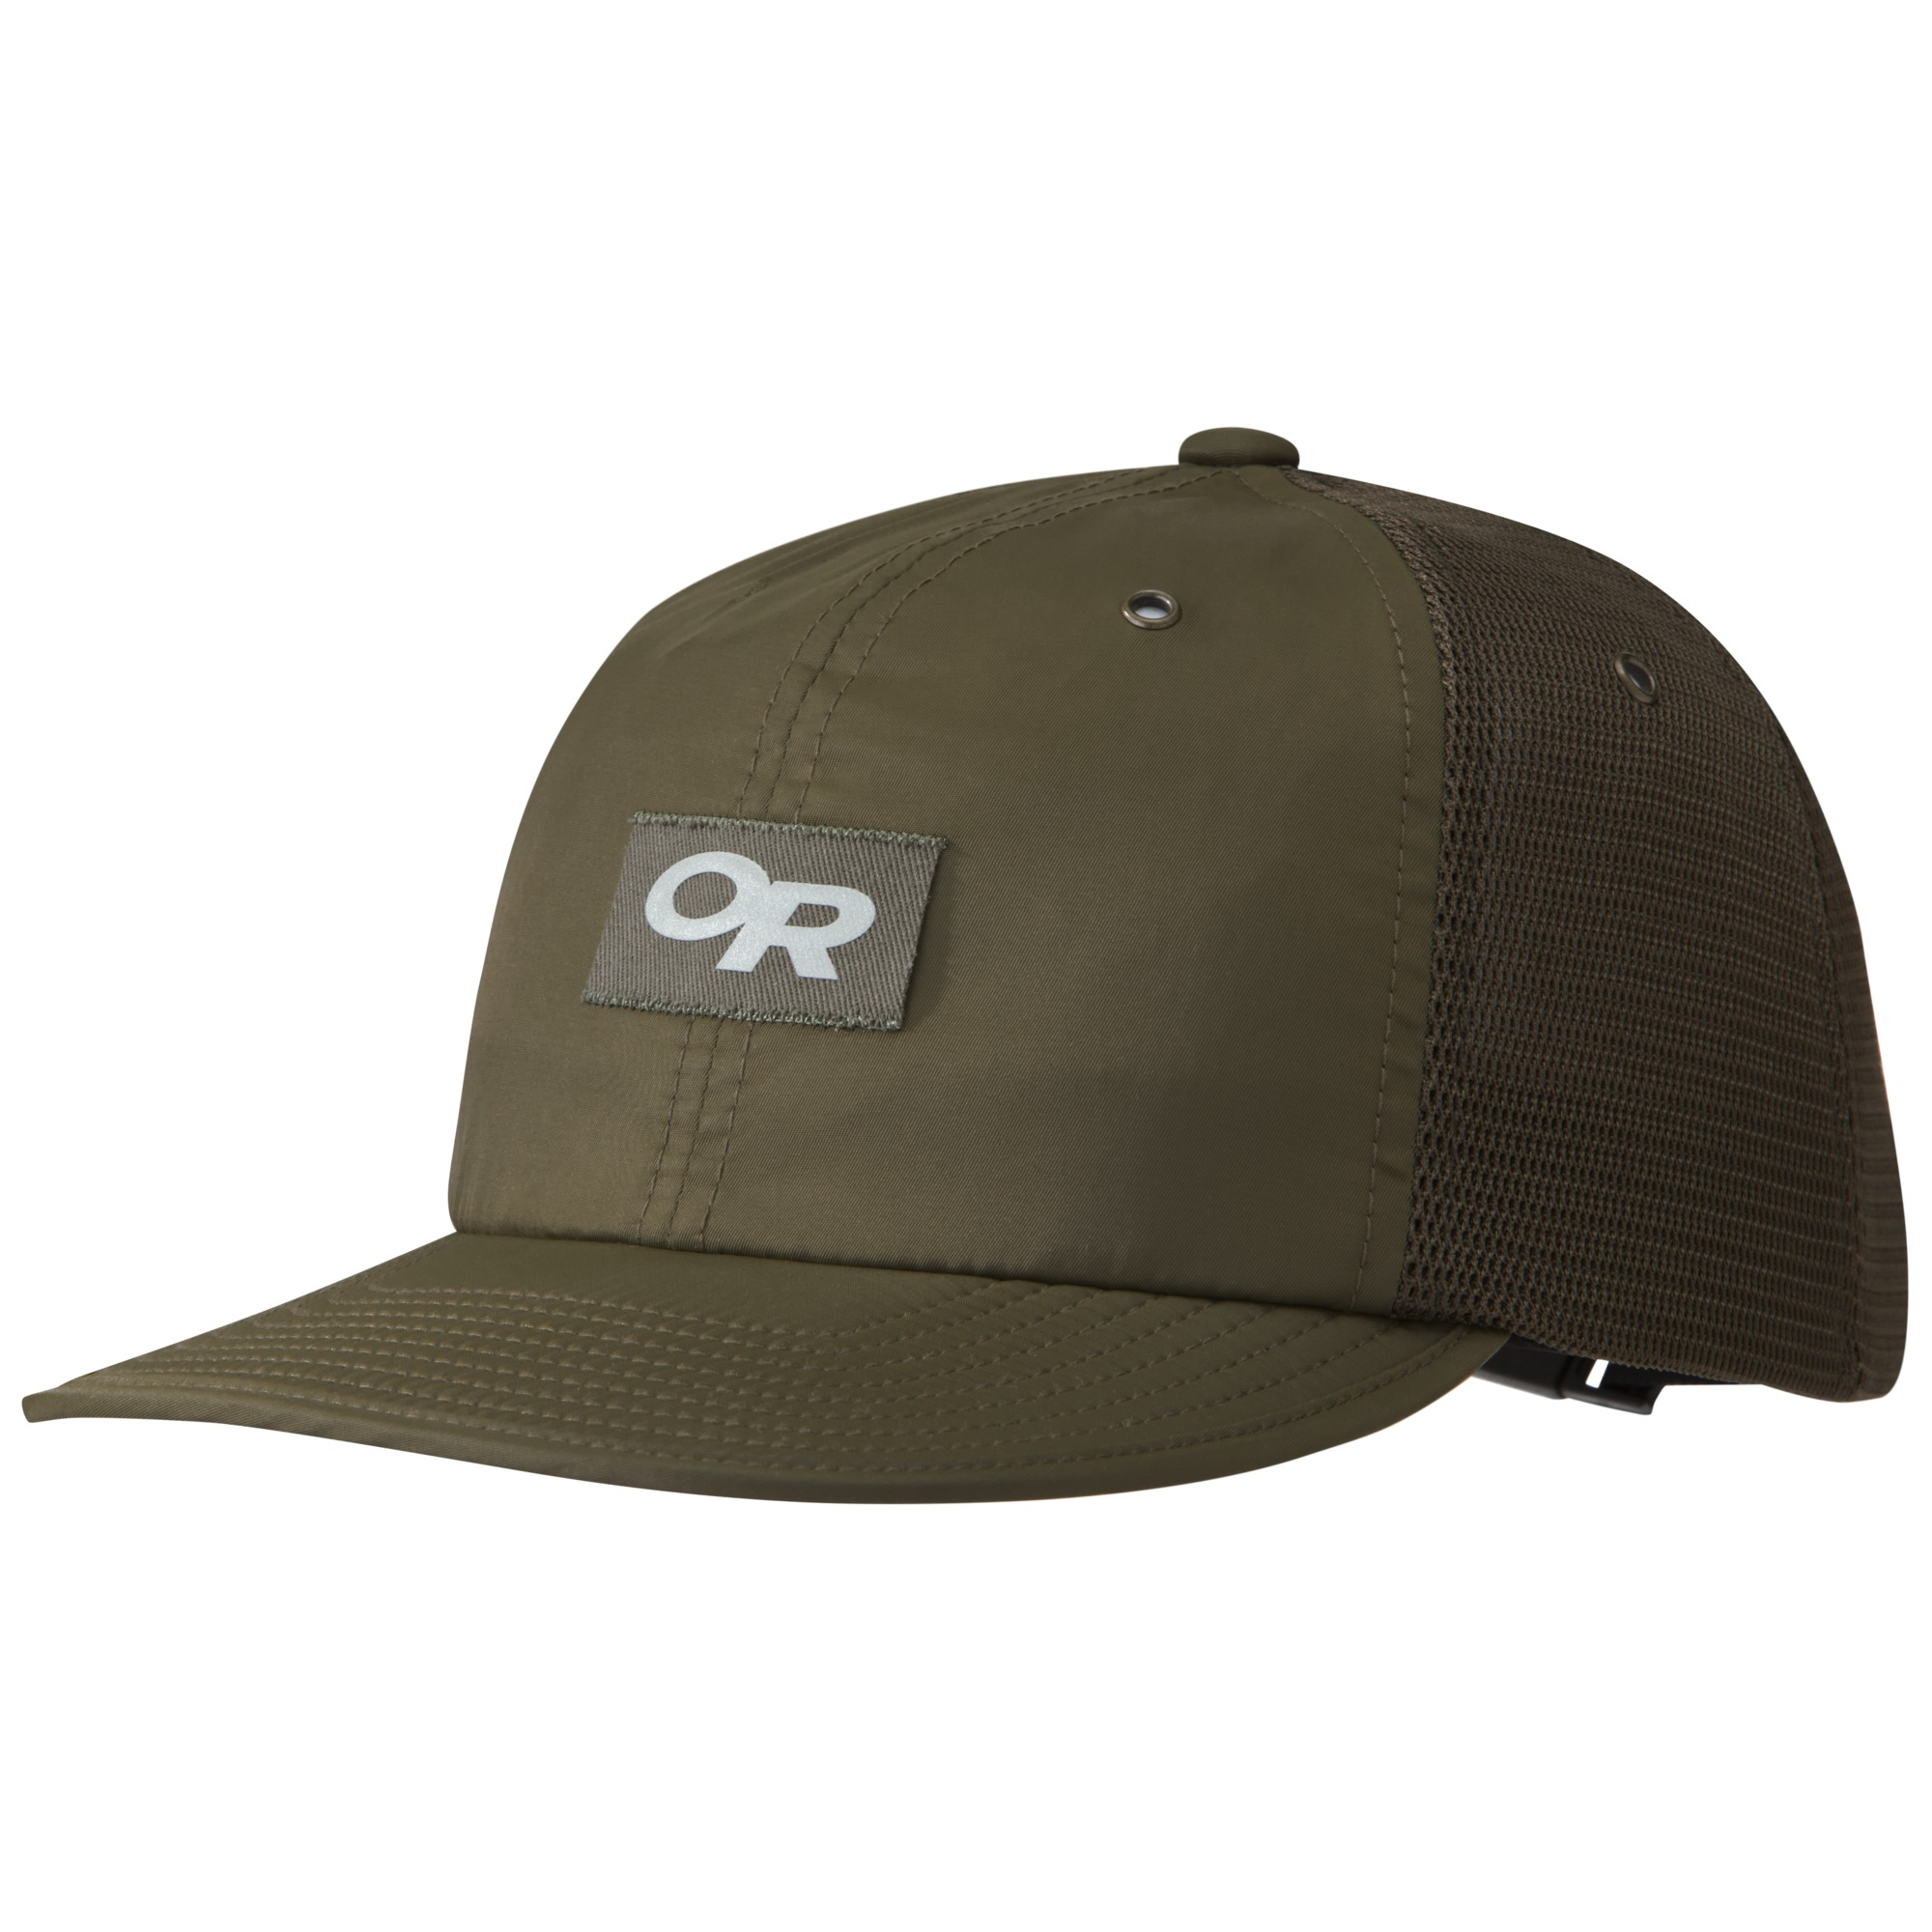 b500f6399bcc1 Performance Trucker - Trail - fatigue